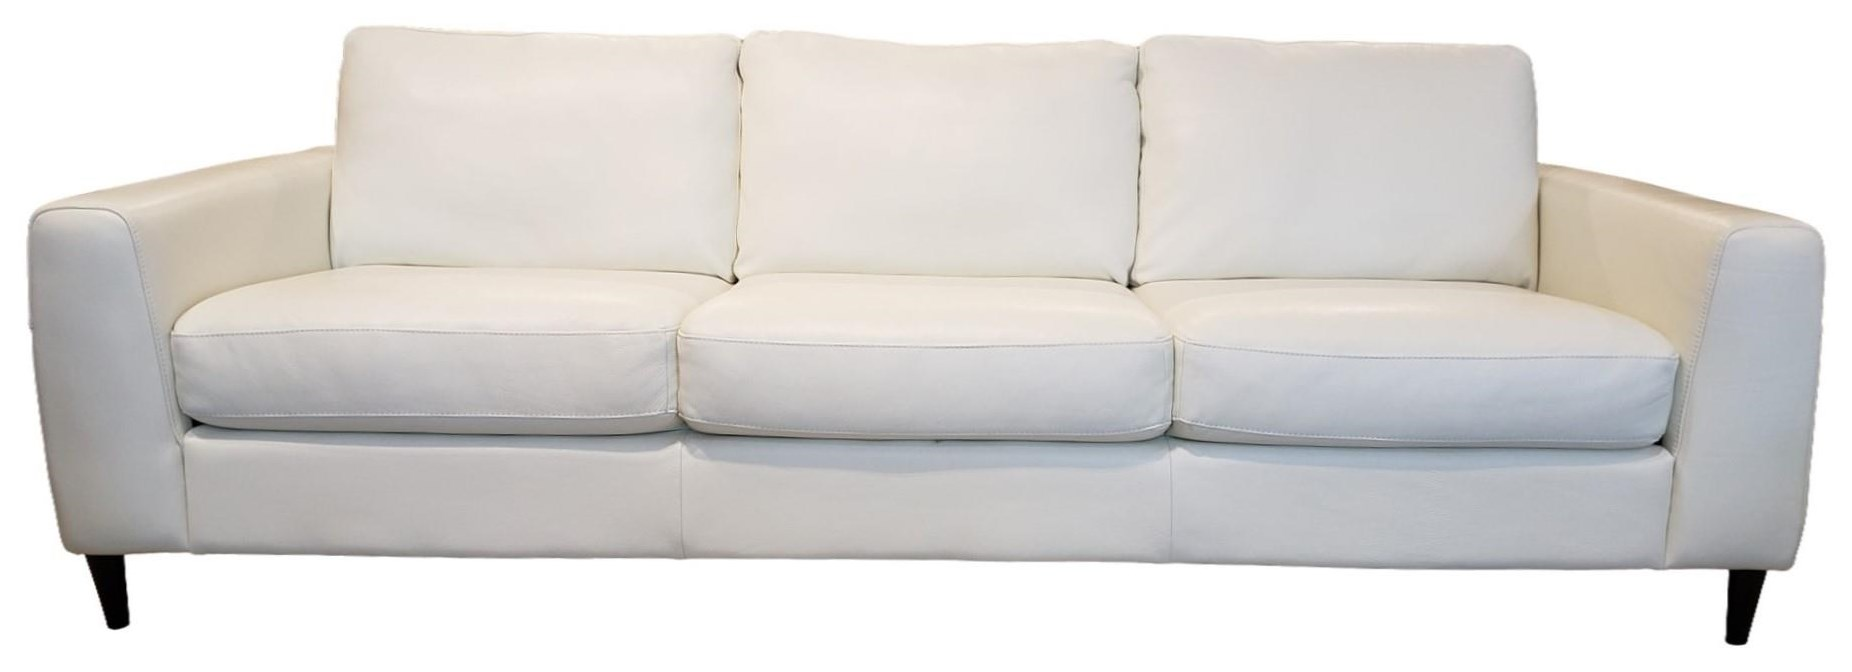 Atticus Sofa by Palliser at Upper Room Home Furnishings